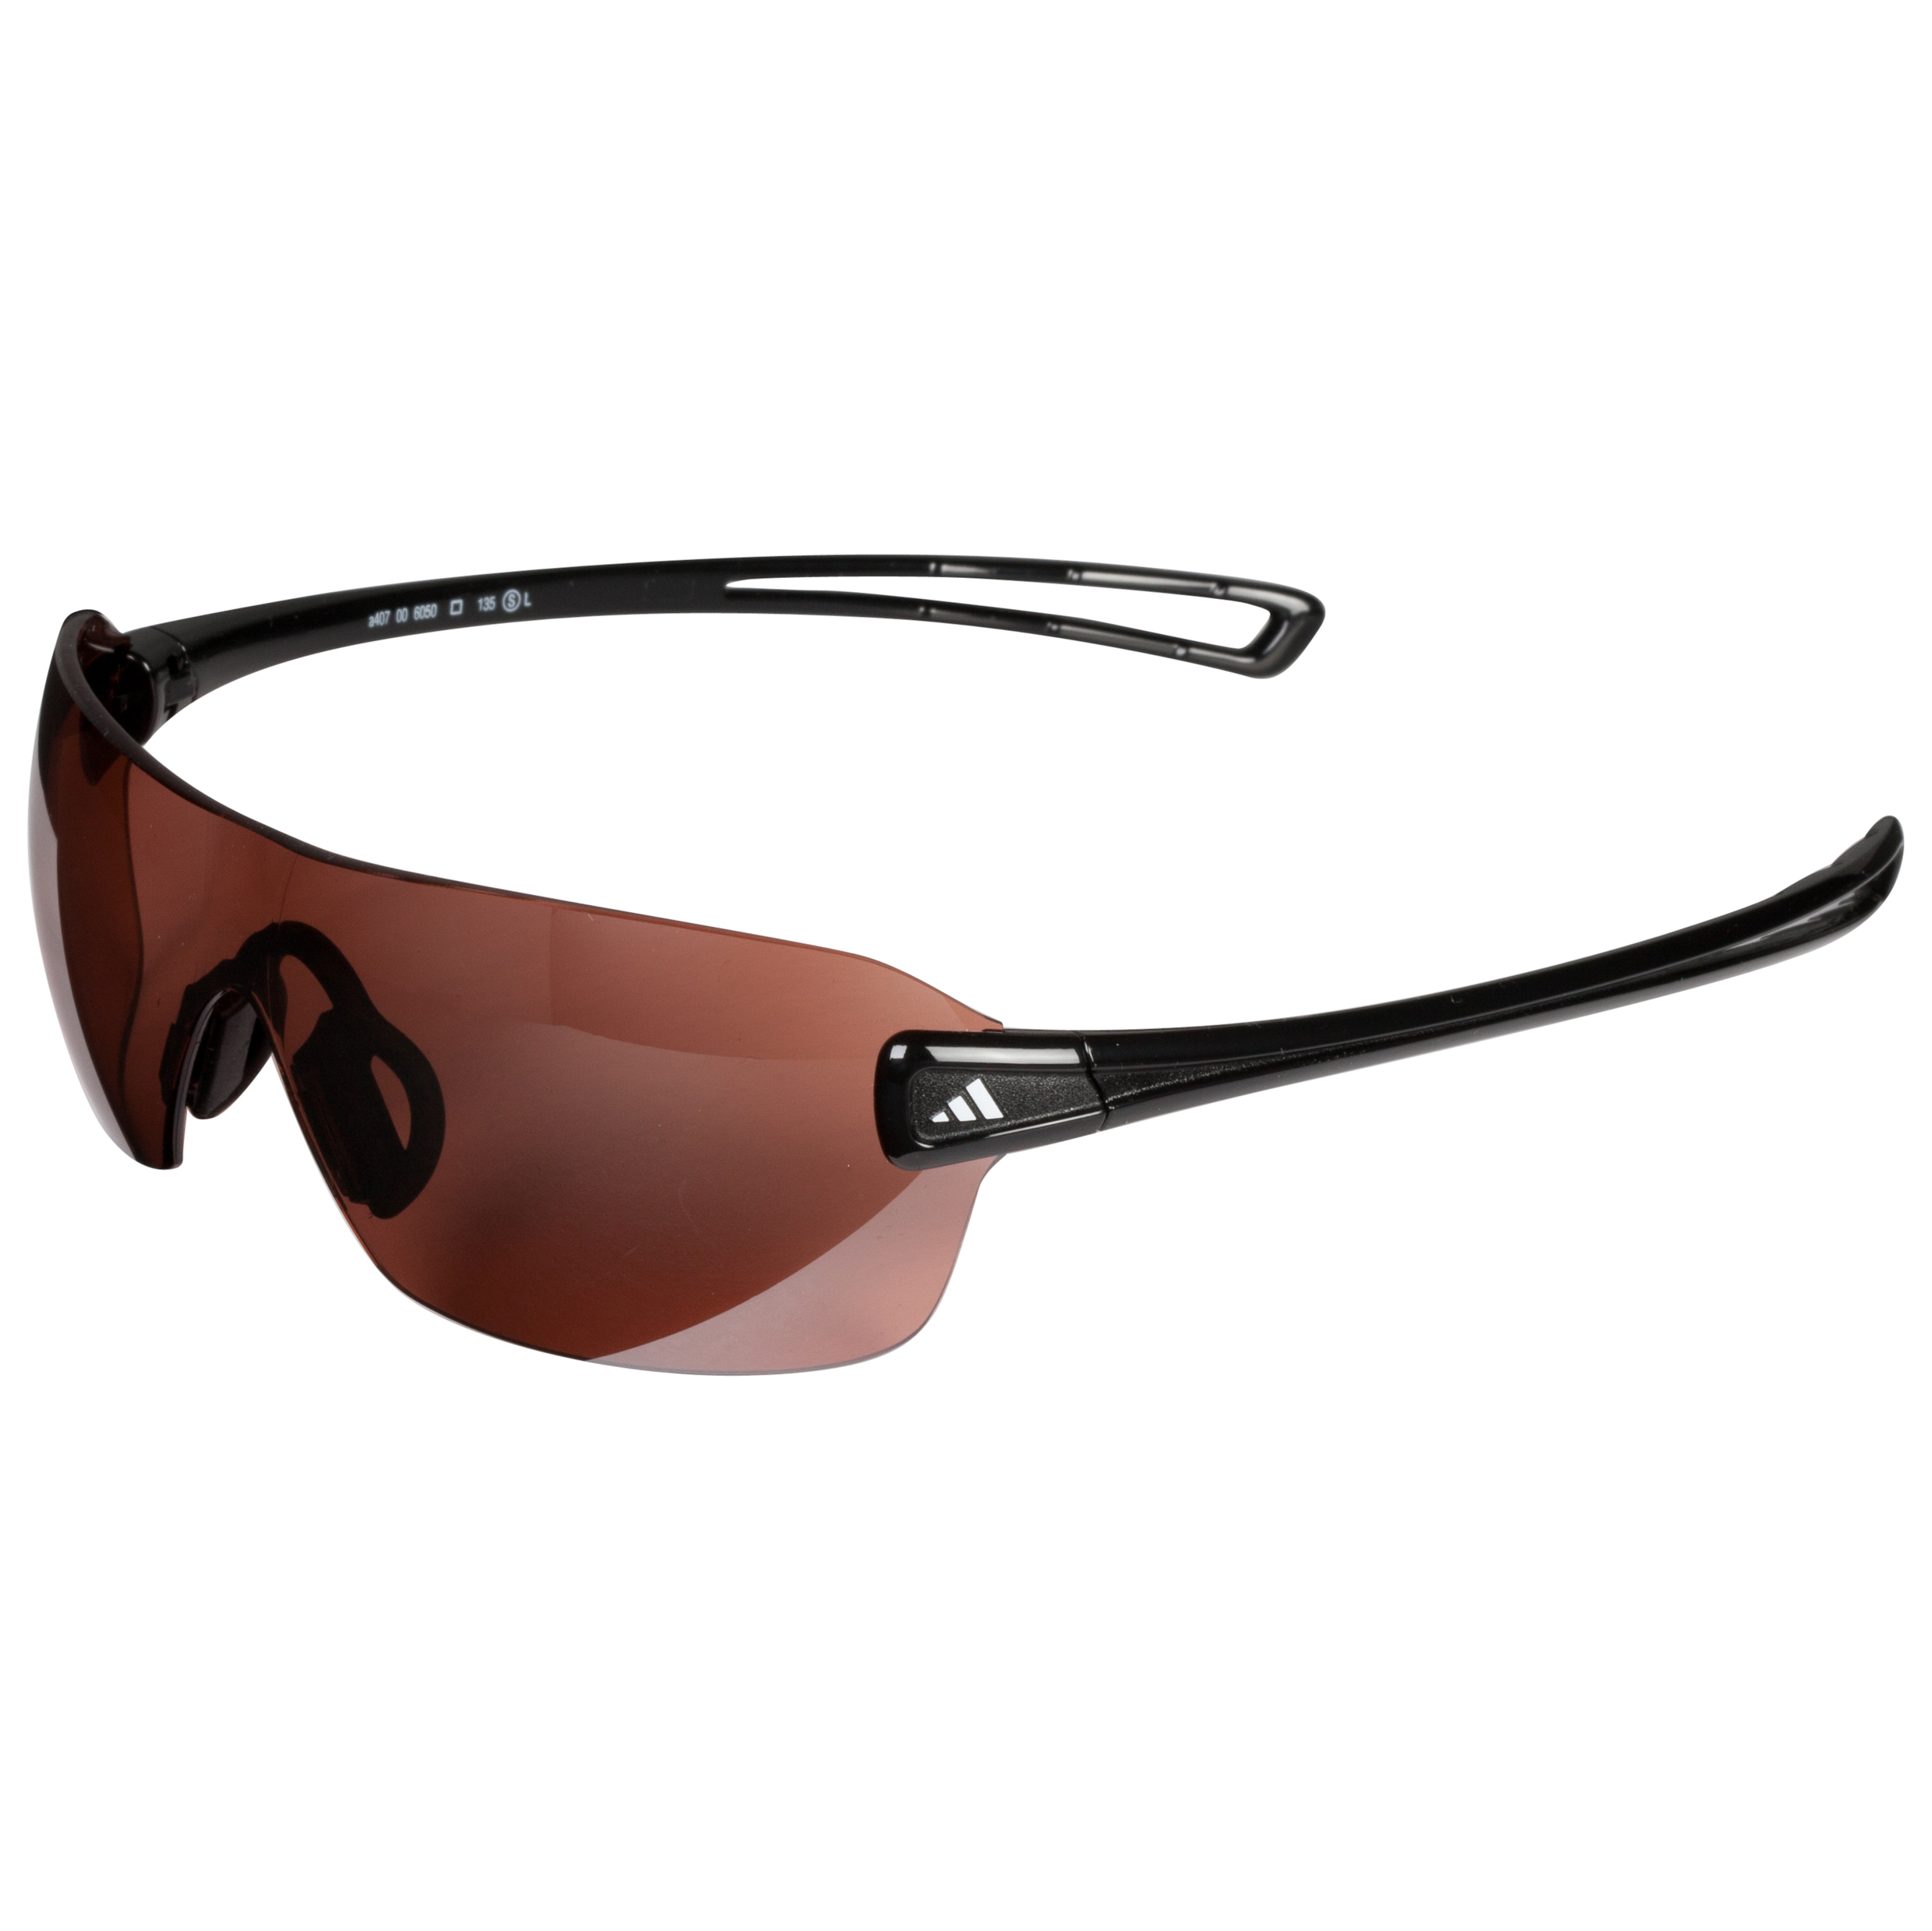 Adidas Duramo Sunglasses - Black - Small